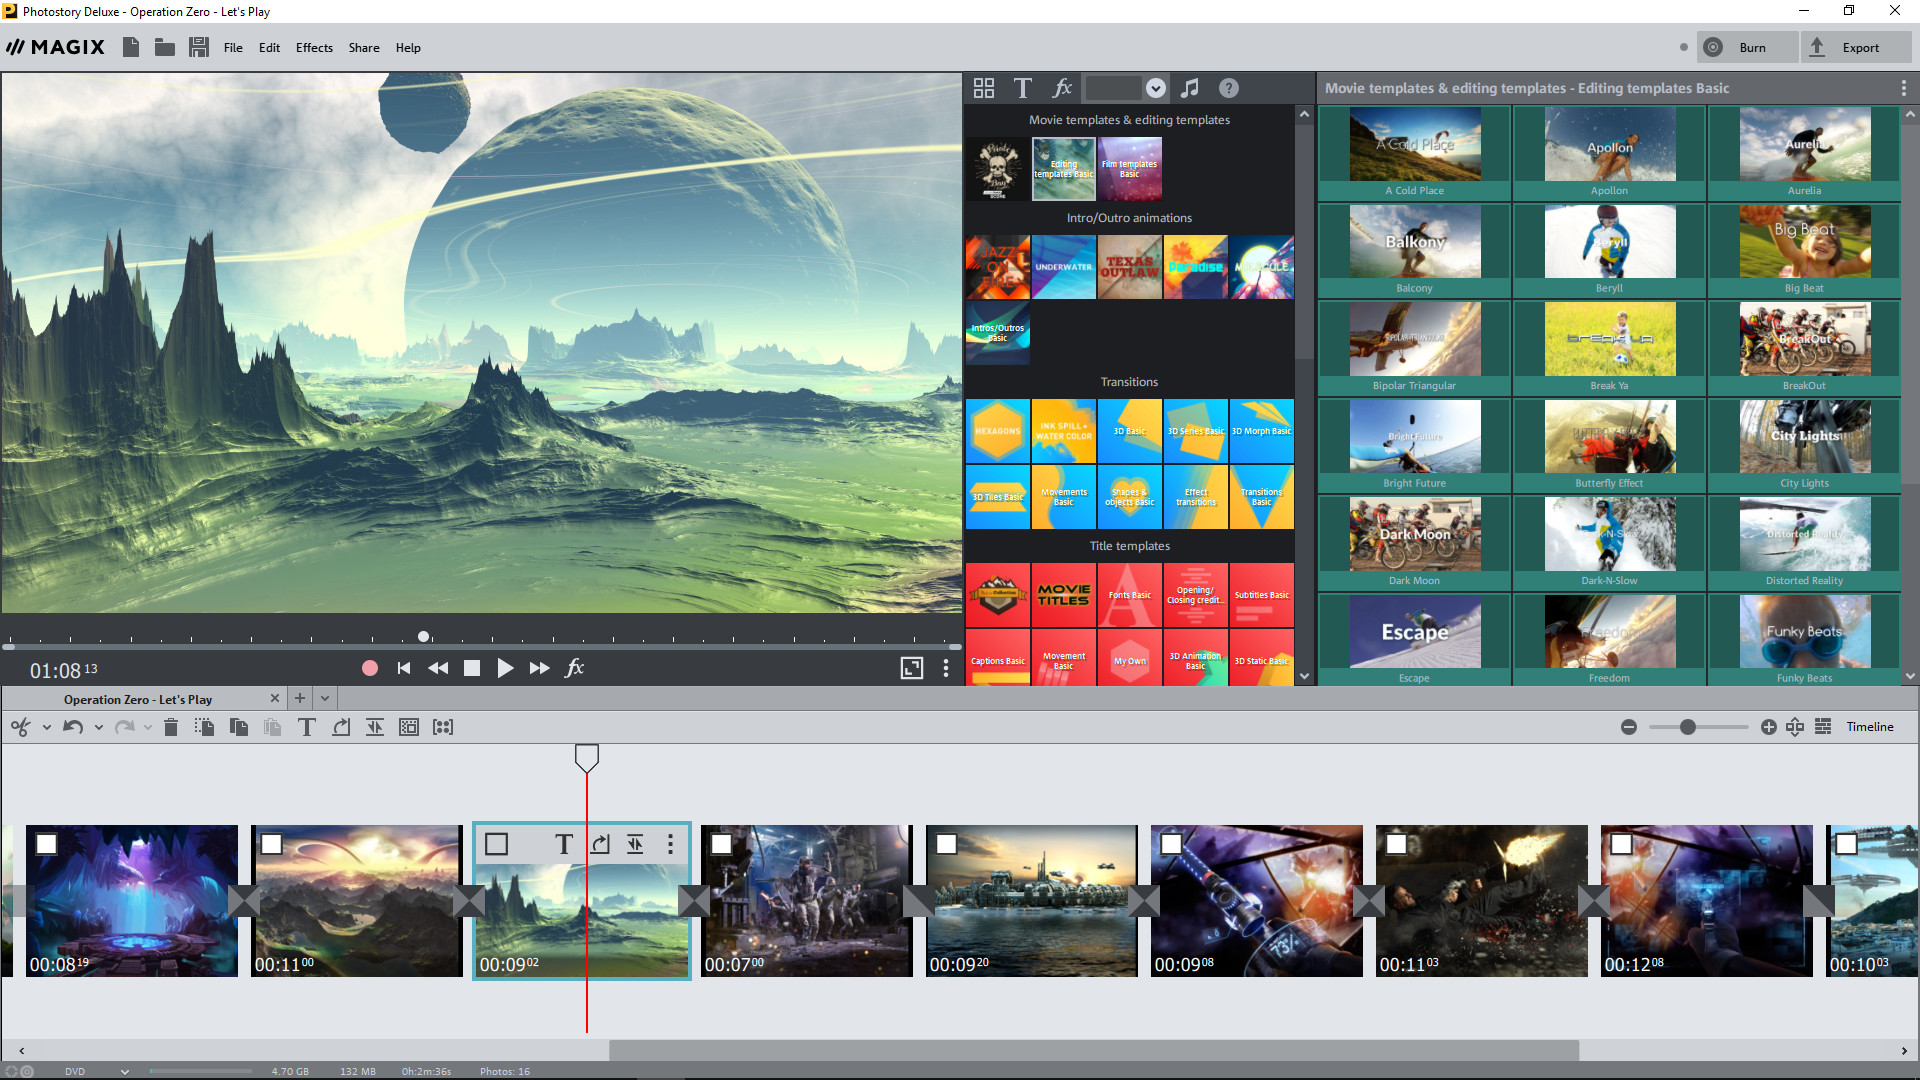 magix photostory deluxe for mac